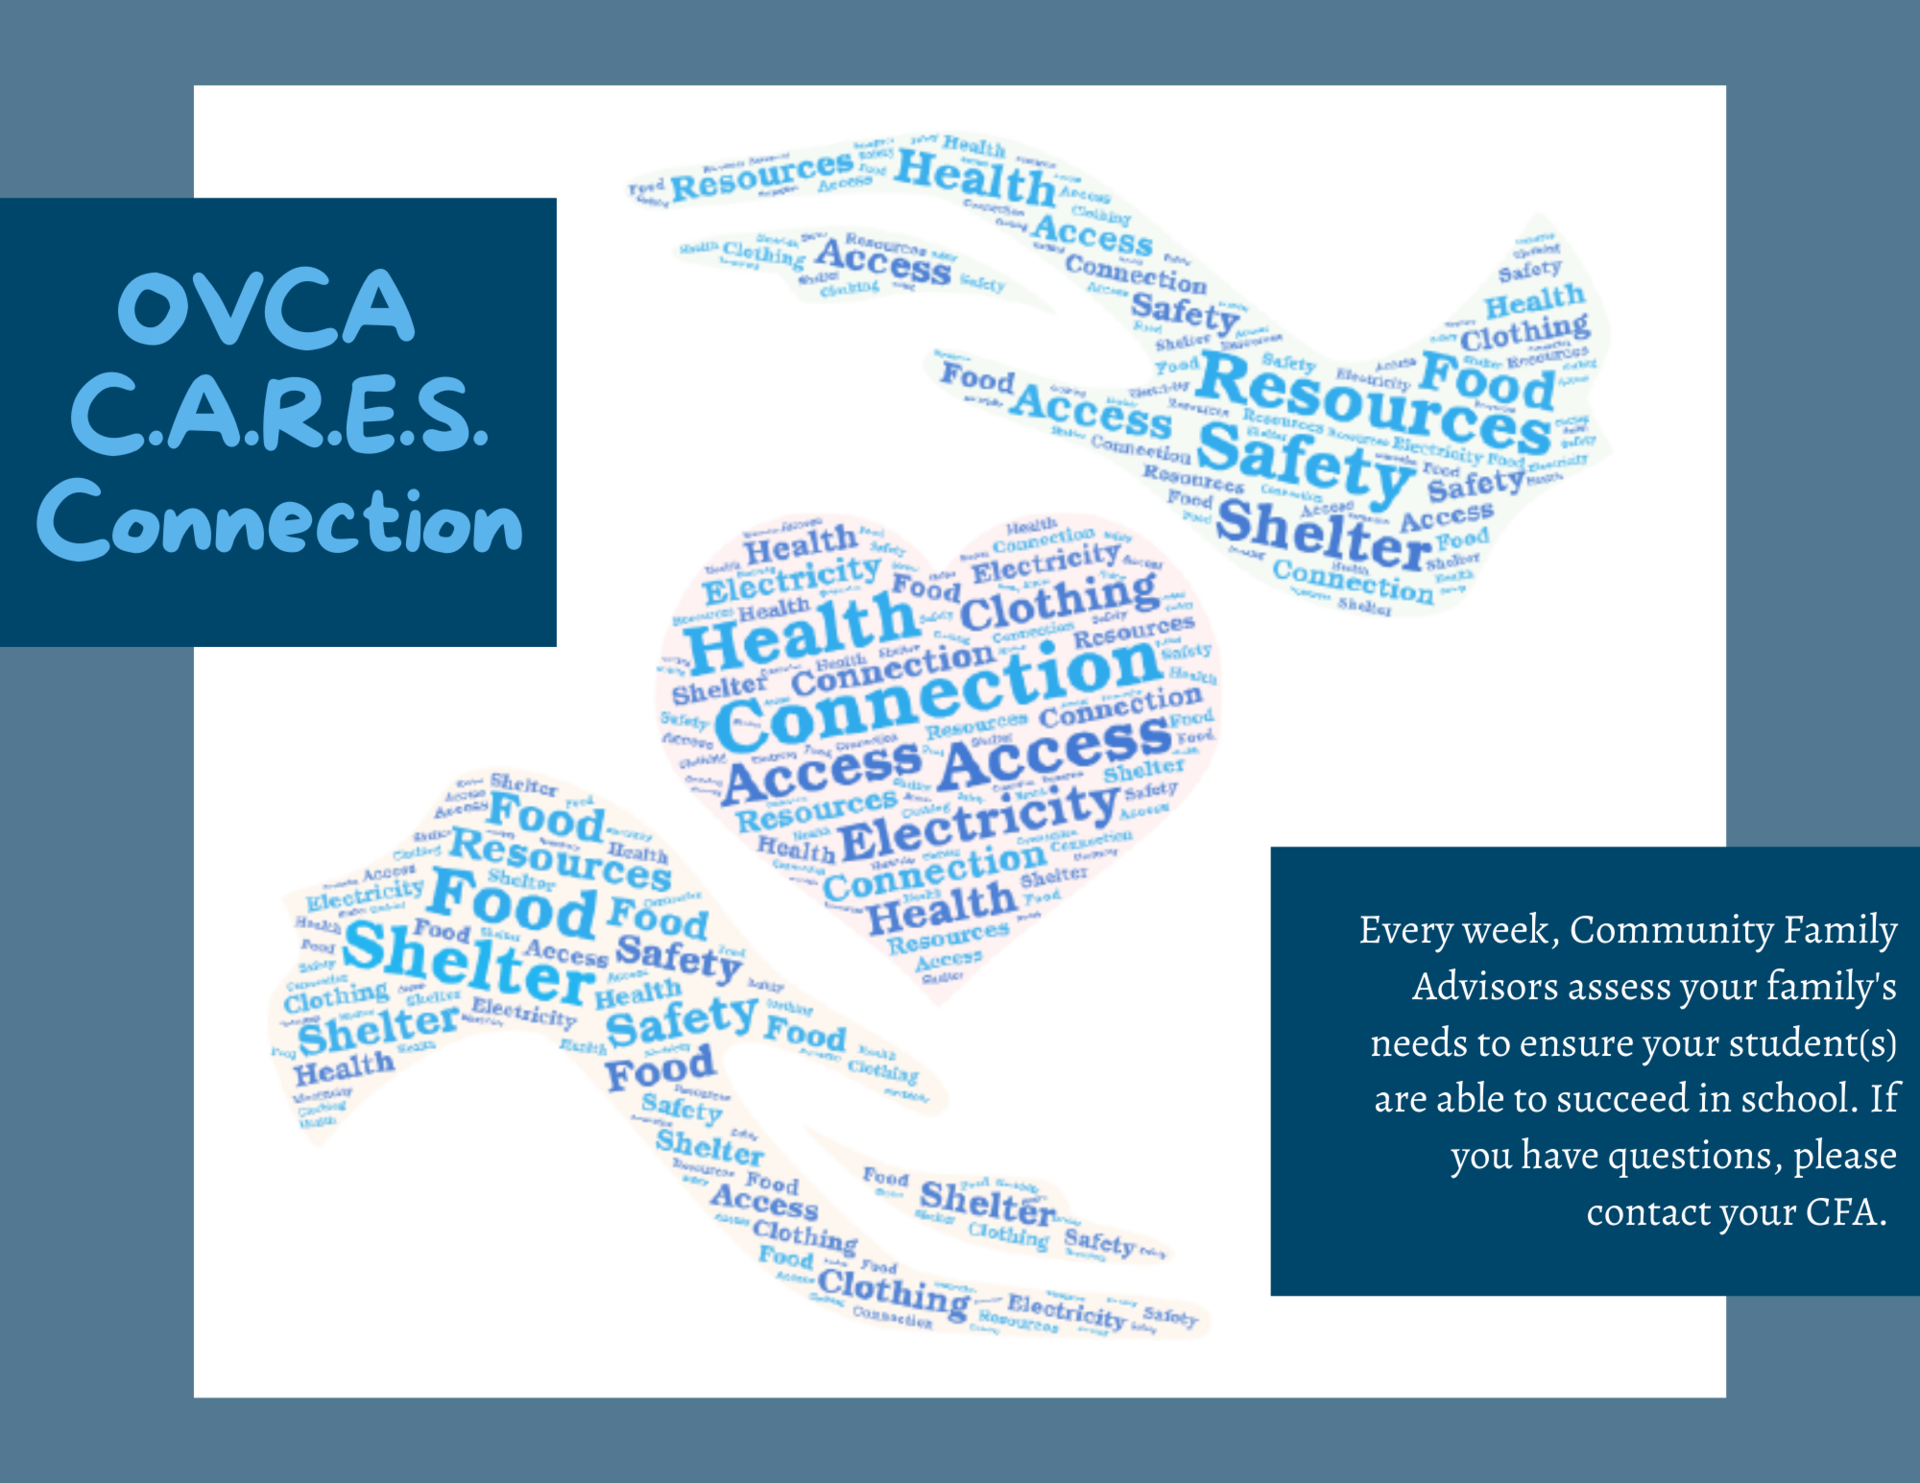 graphic - OVCA CARES Connection